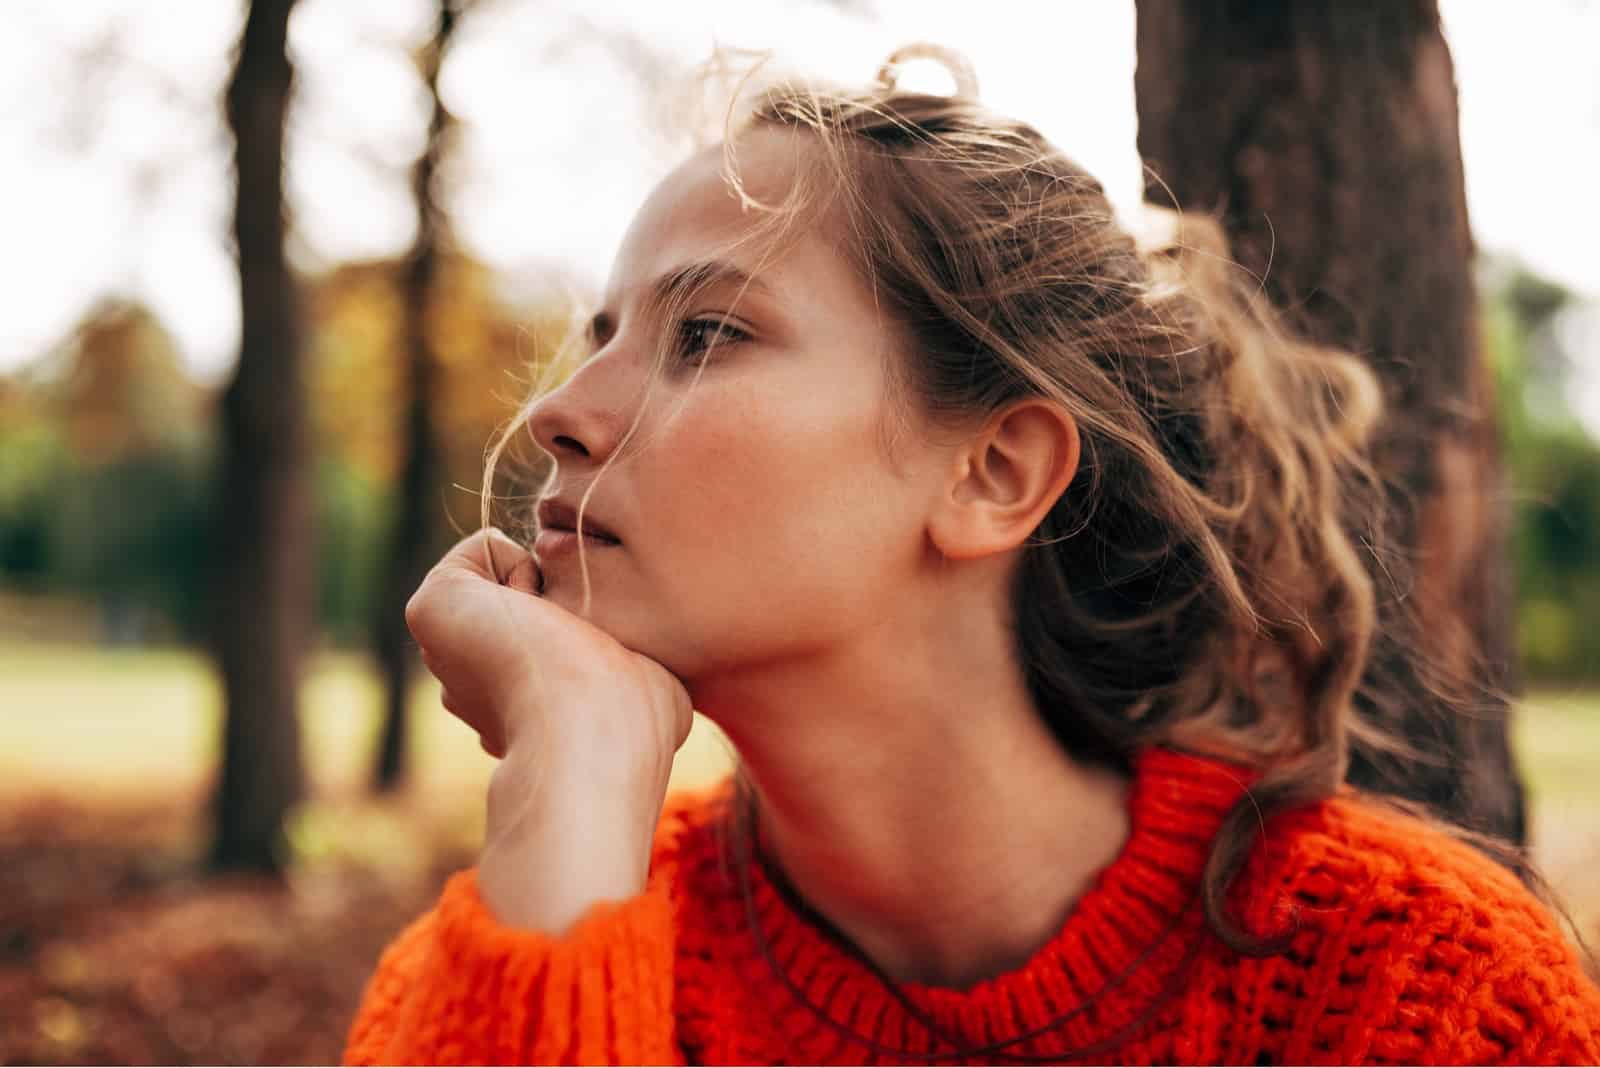 pensive woman in nature thinking